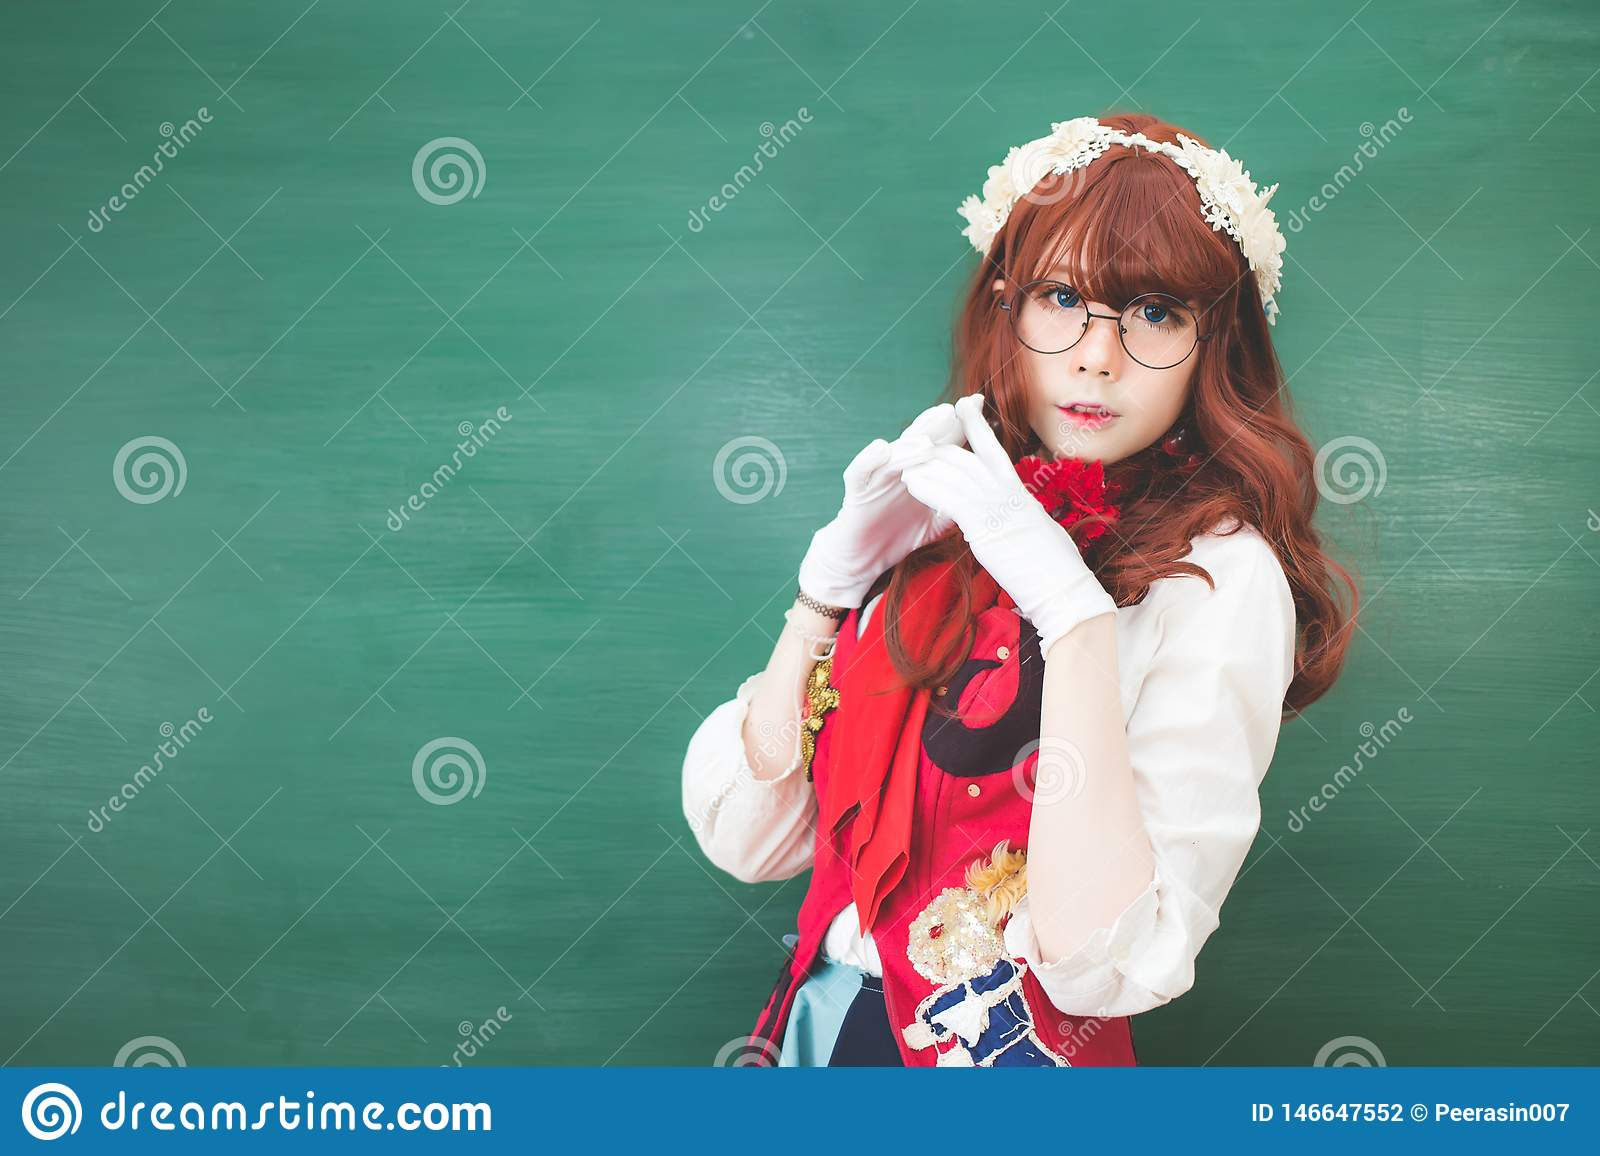 Cute long haired Asian girl Thai people wearing glasses and Japanese school uniforms standing in front of the blackboard.